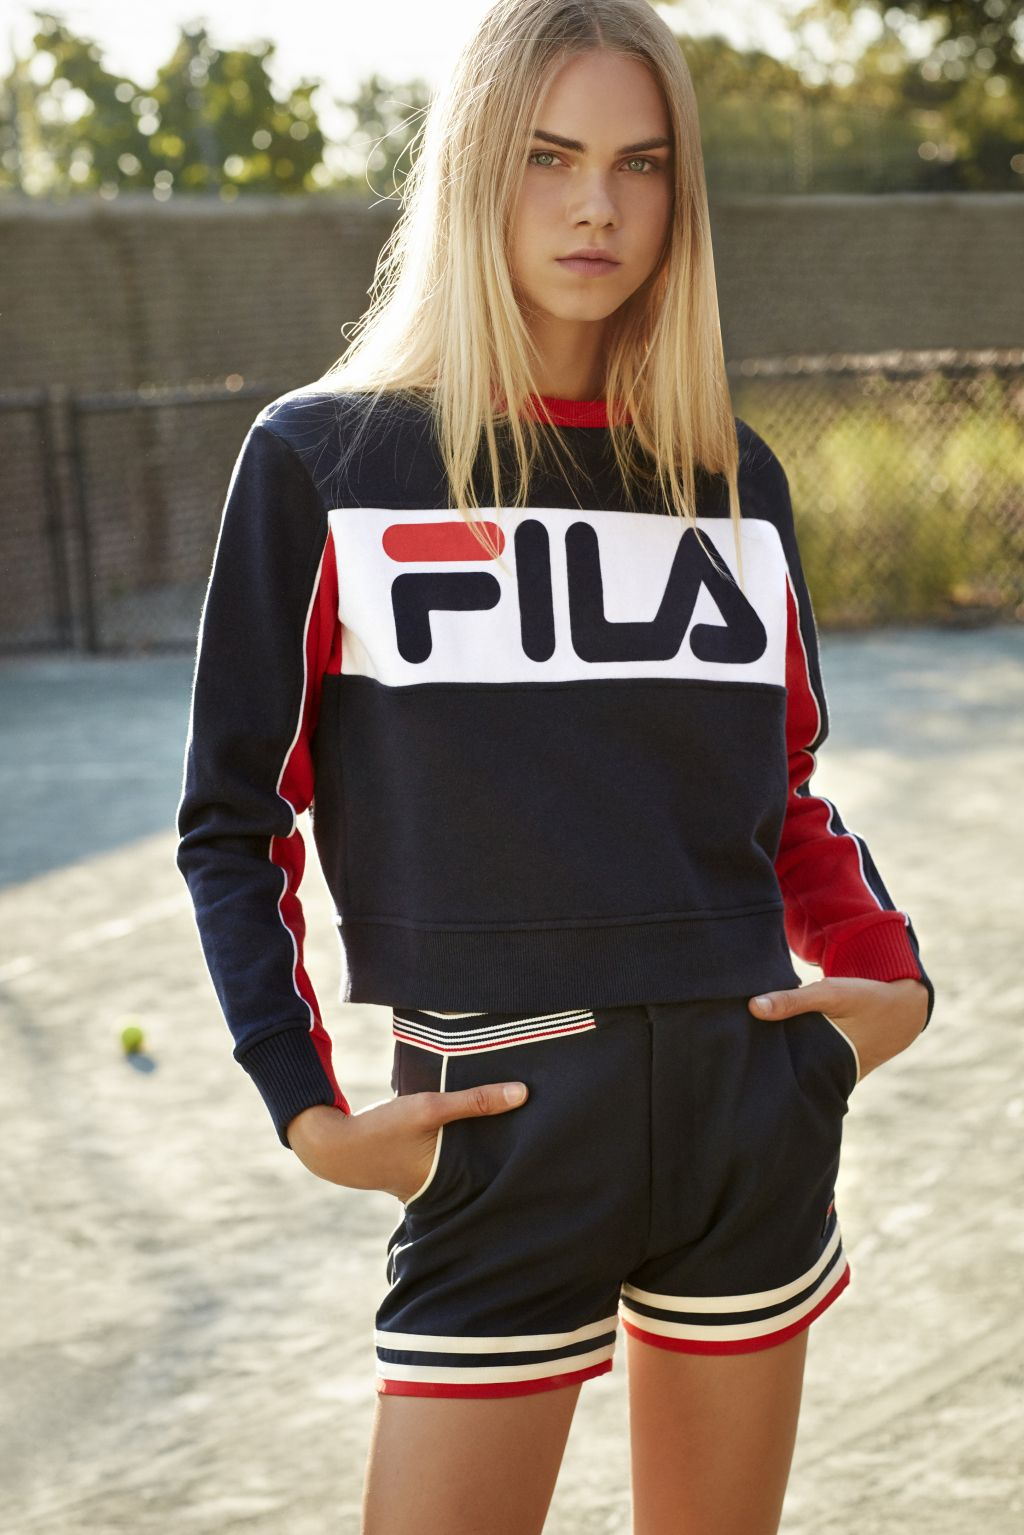 Fila Teams Up With Urban Outfitters For Exclusive Line